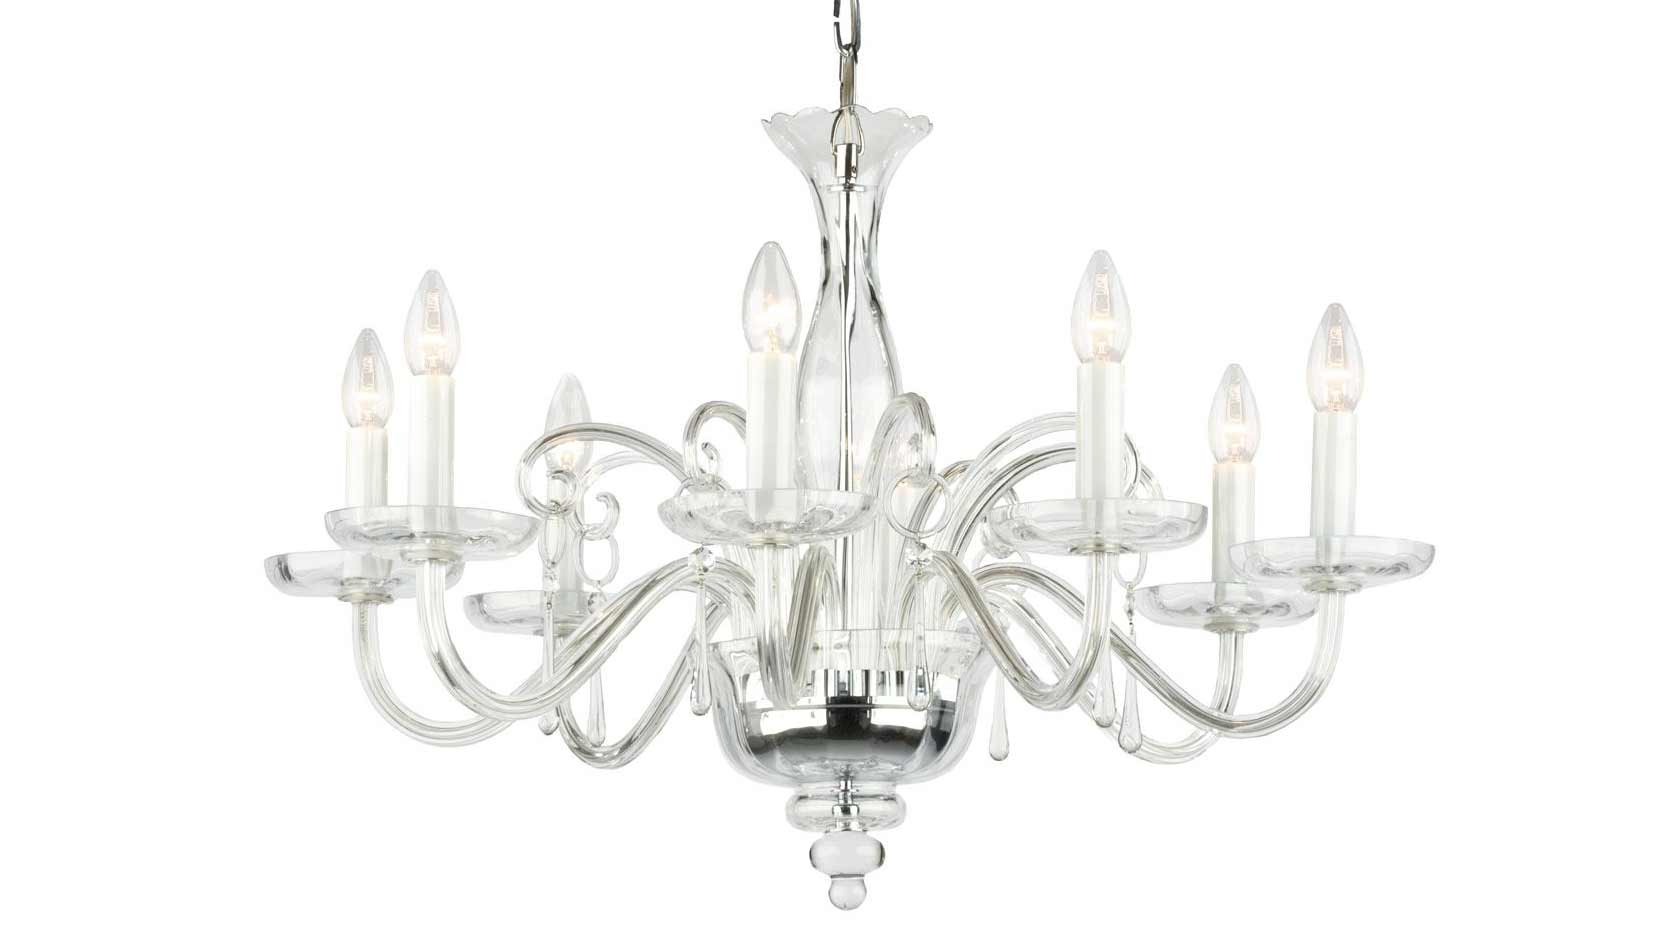 Bach 8-Arm Crystal Chandelier